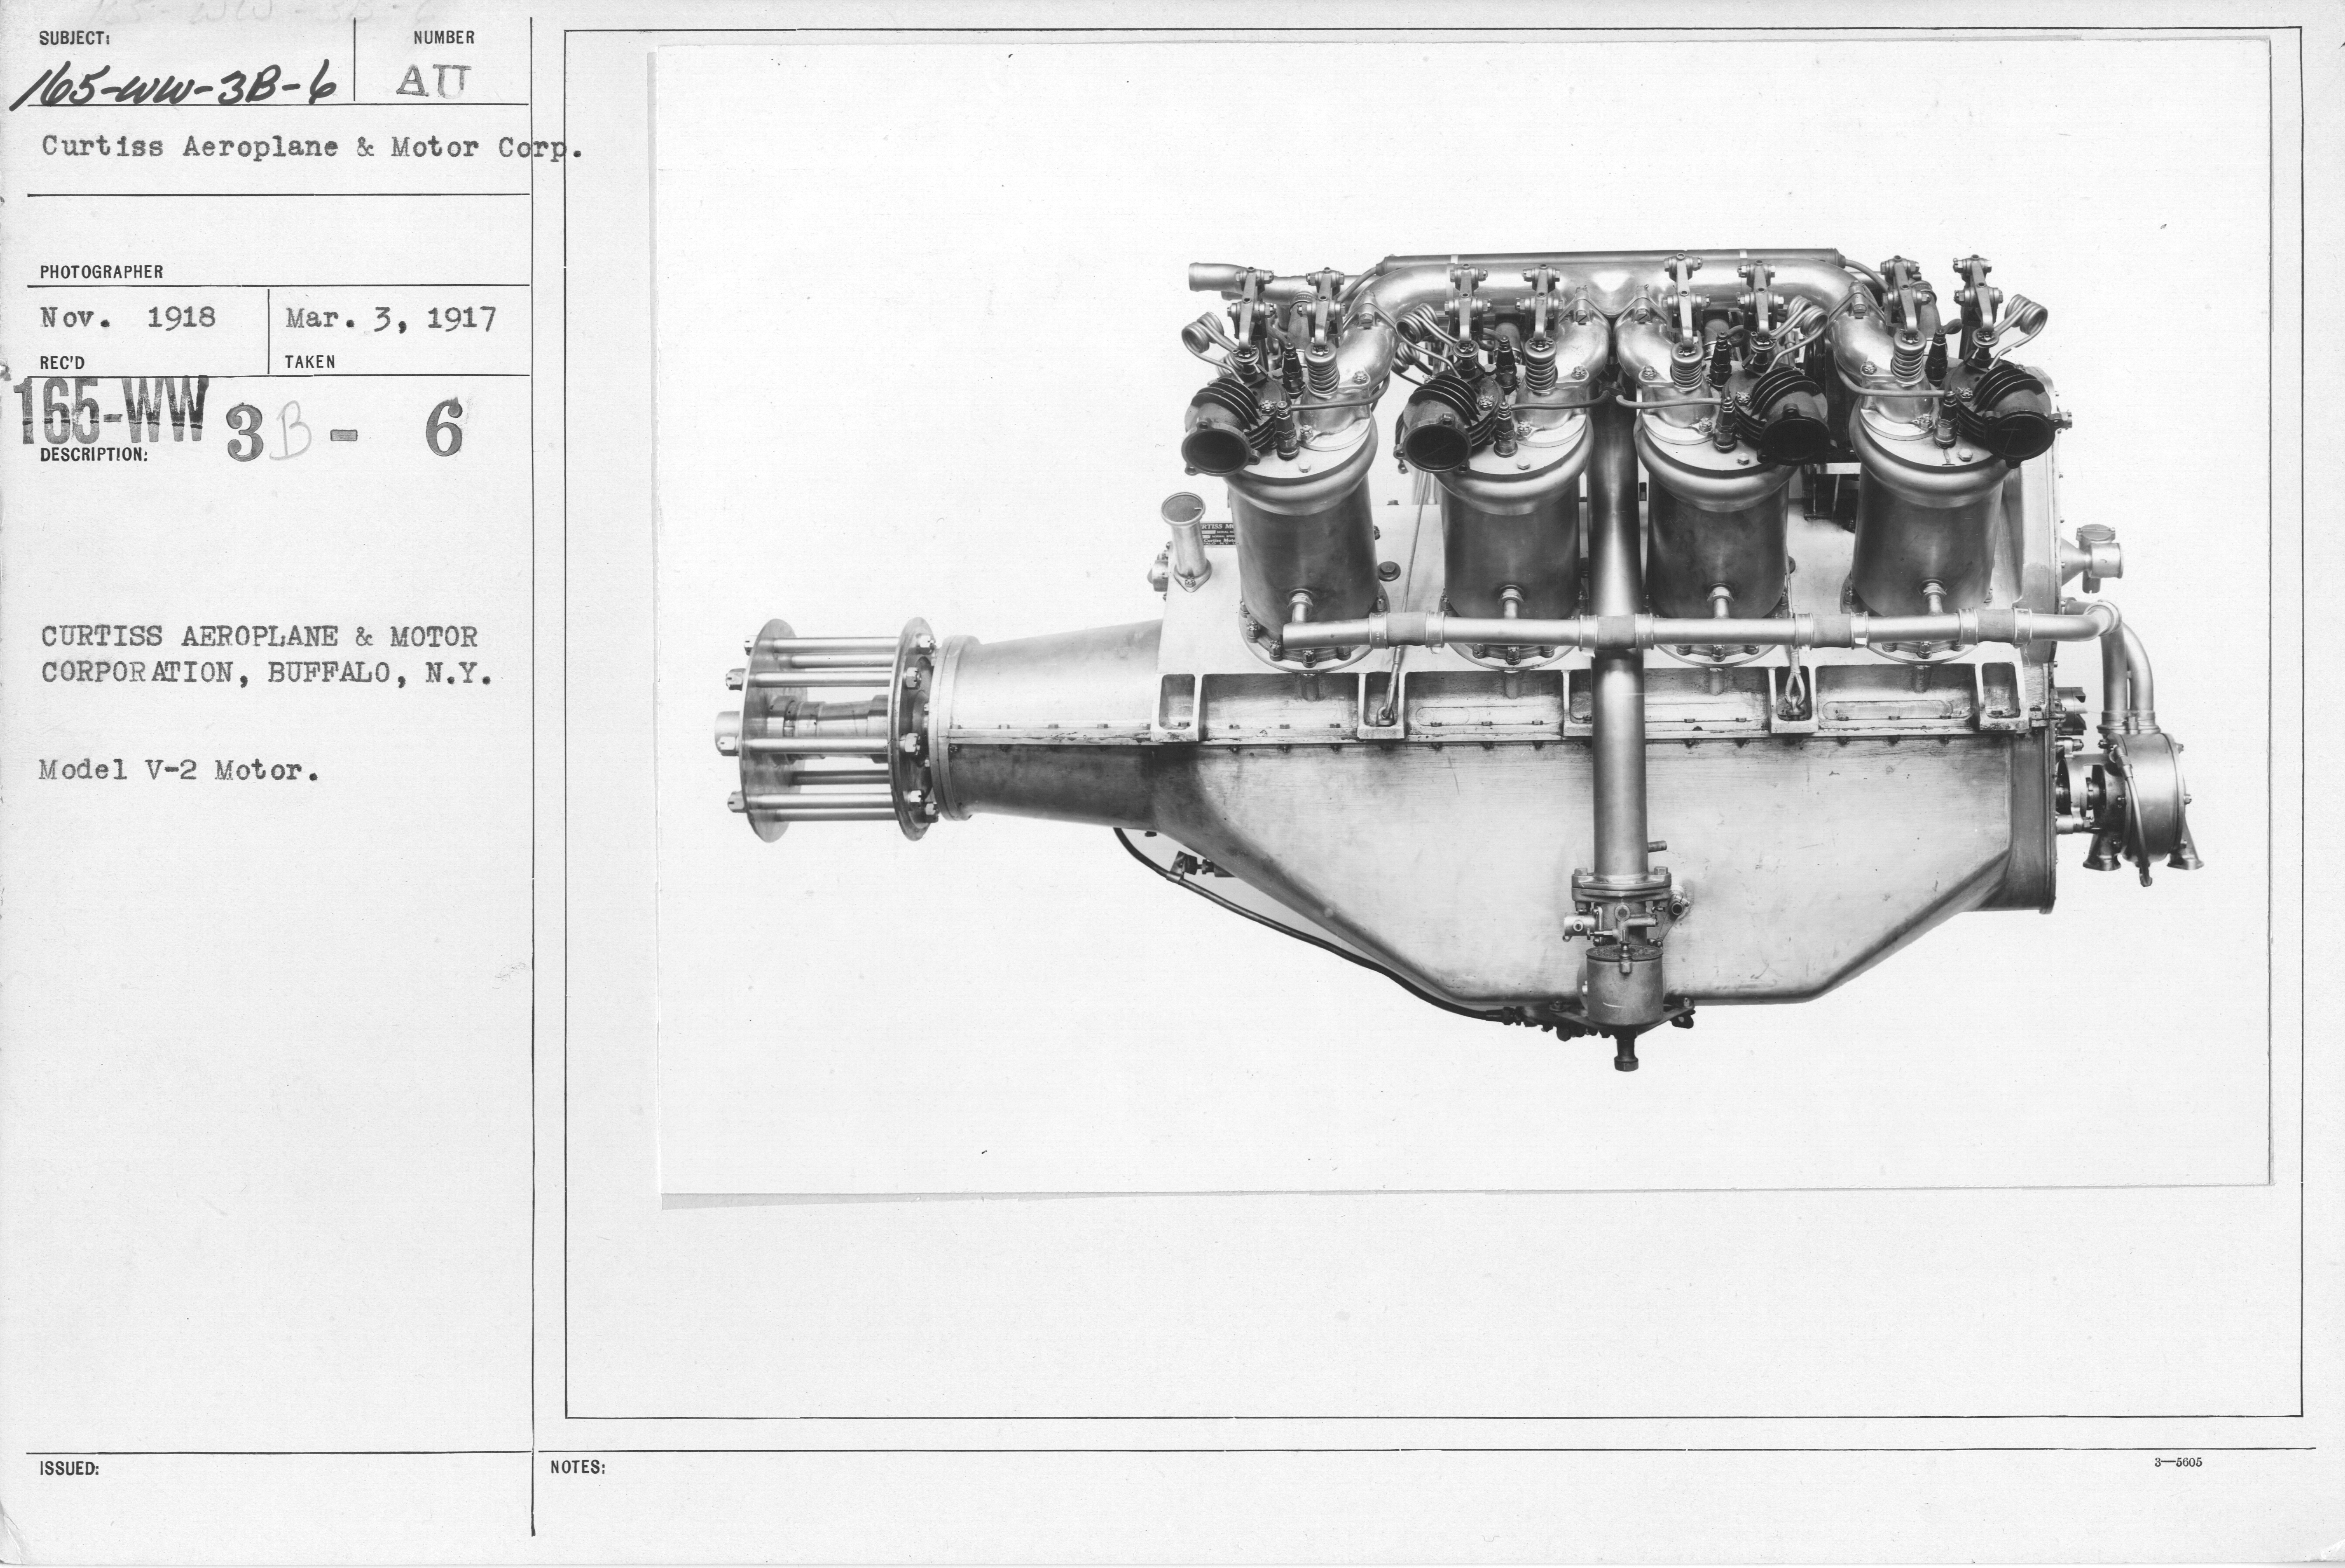 Fileairplanes Engines Curtiss Aeroplane And Motor Corporation Diagram Of A Model Airplane Engine Buffalo Ny